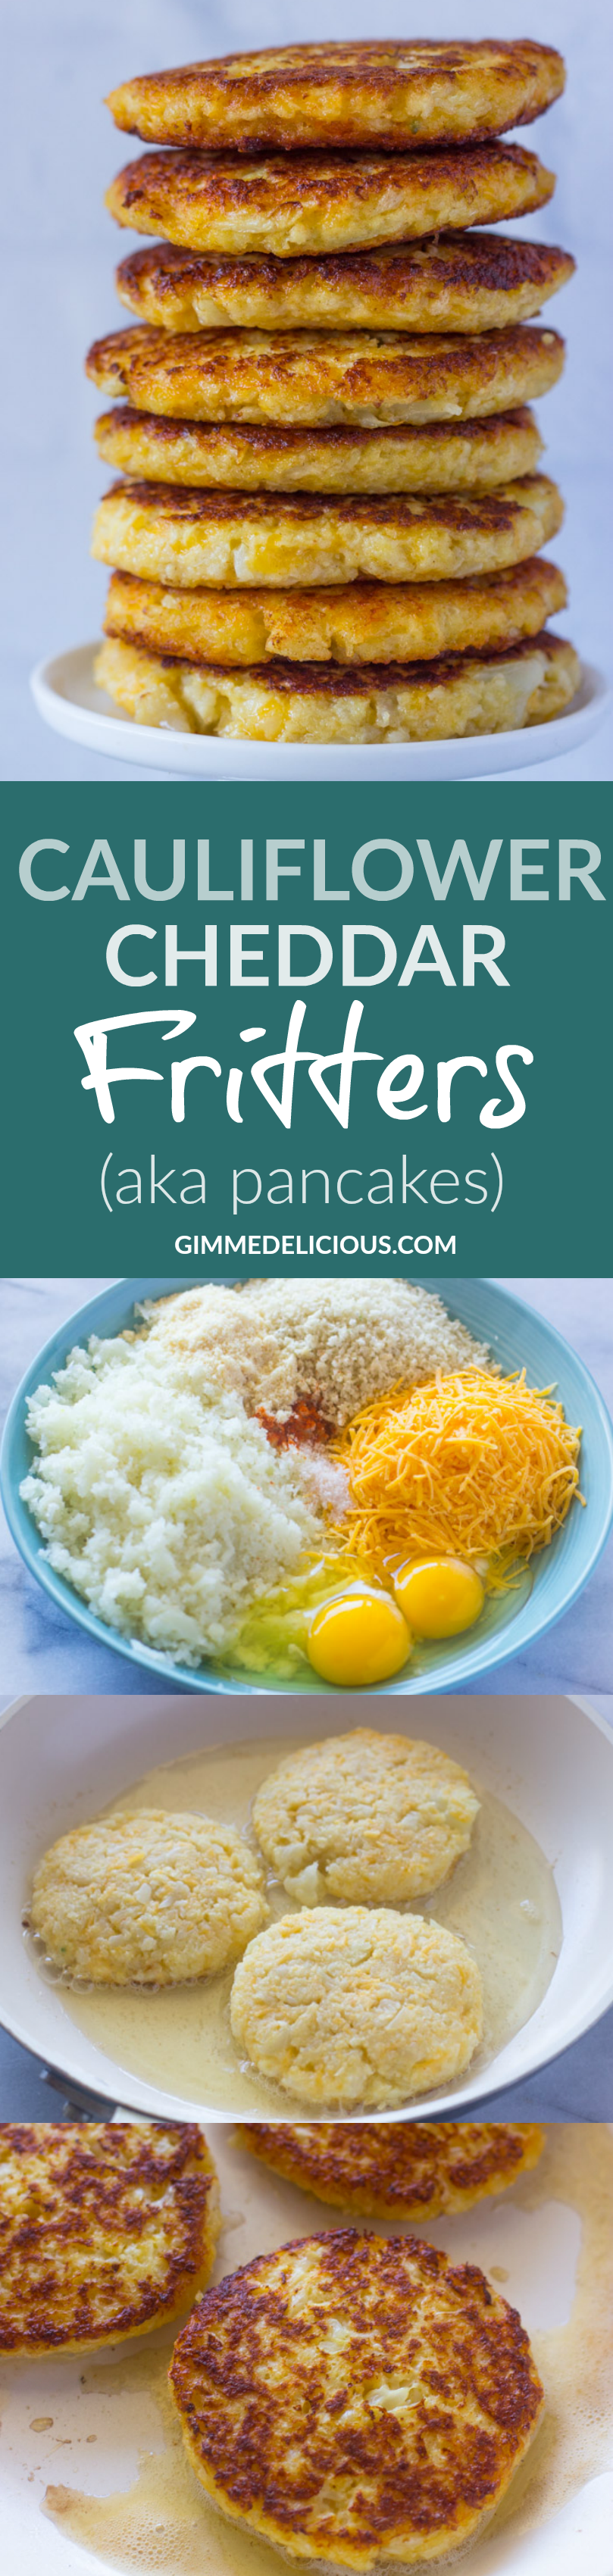 Cauliflower Cheddar Fritters (AKA Pancakes) #SKINNY #HEALTHY #LOWCARB